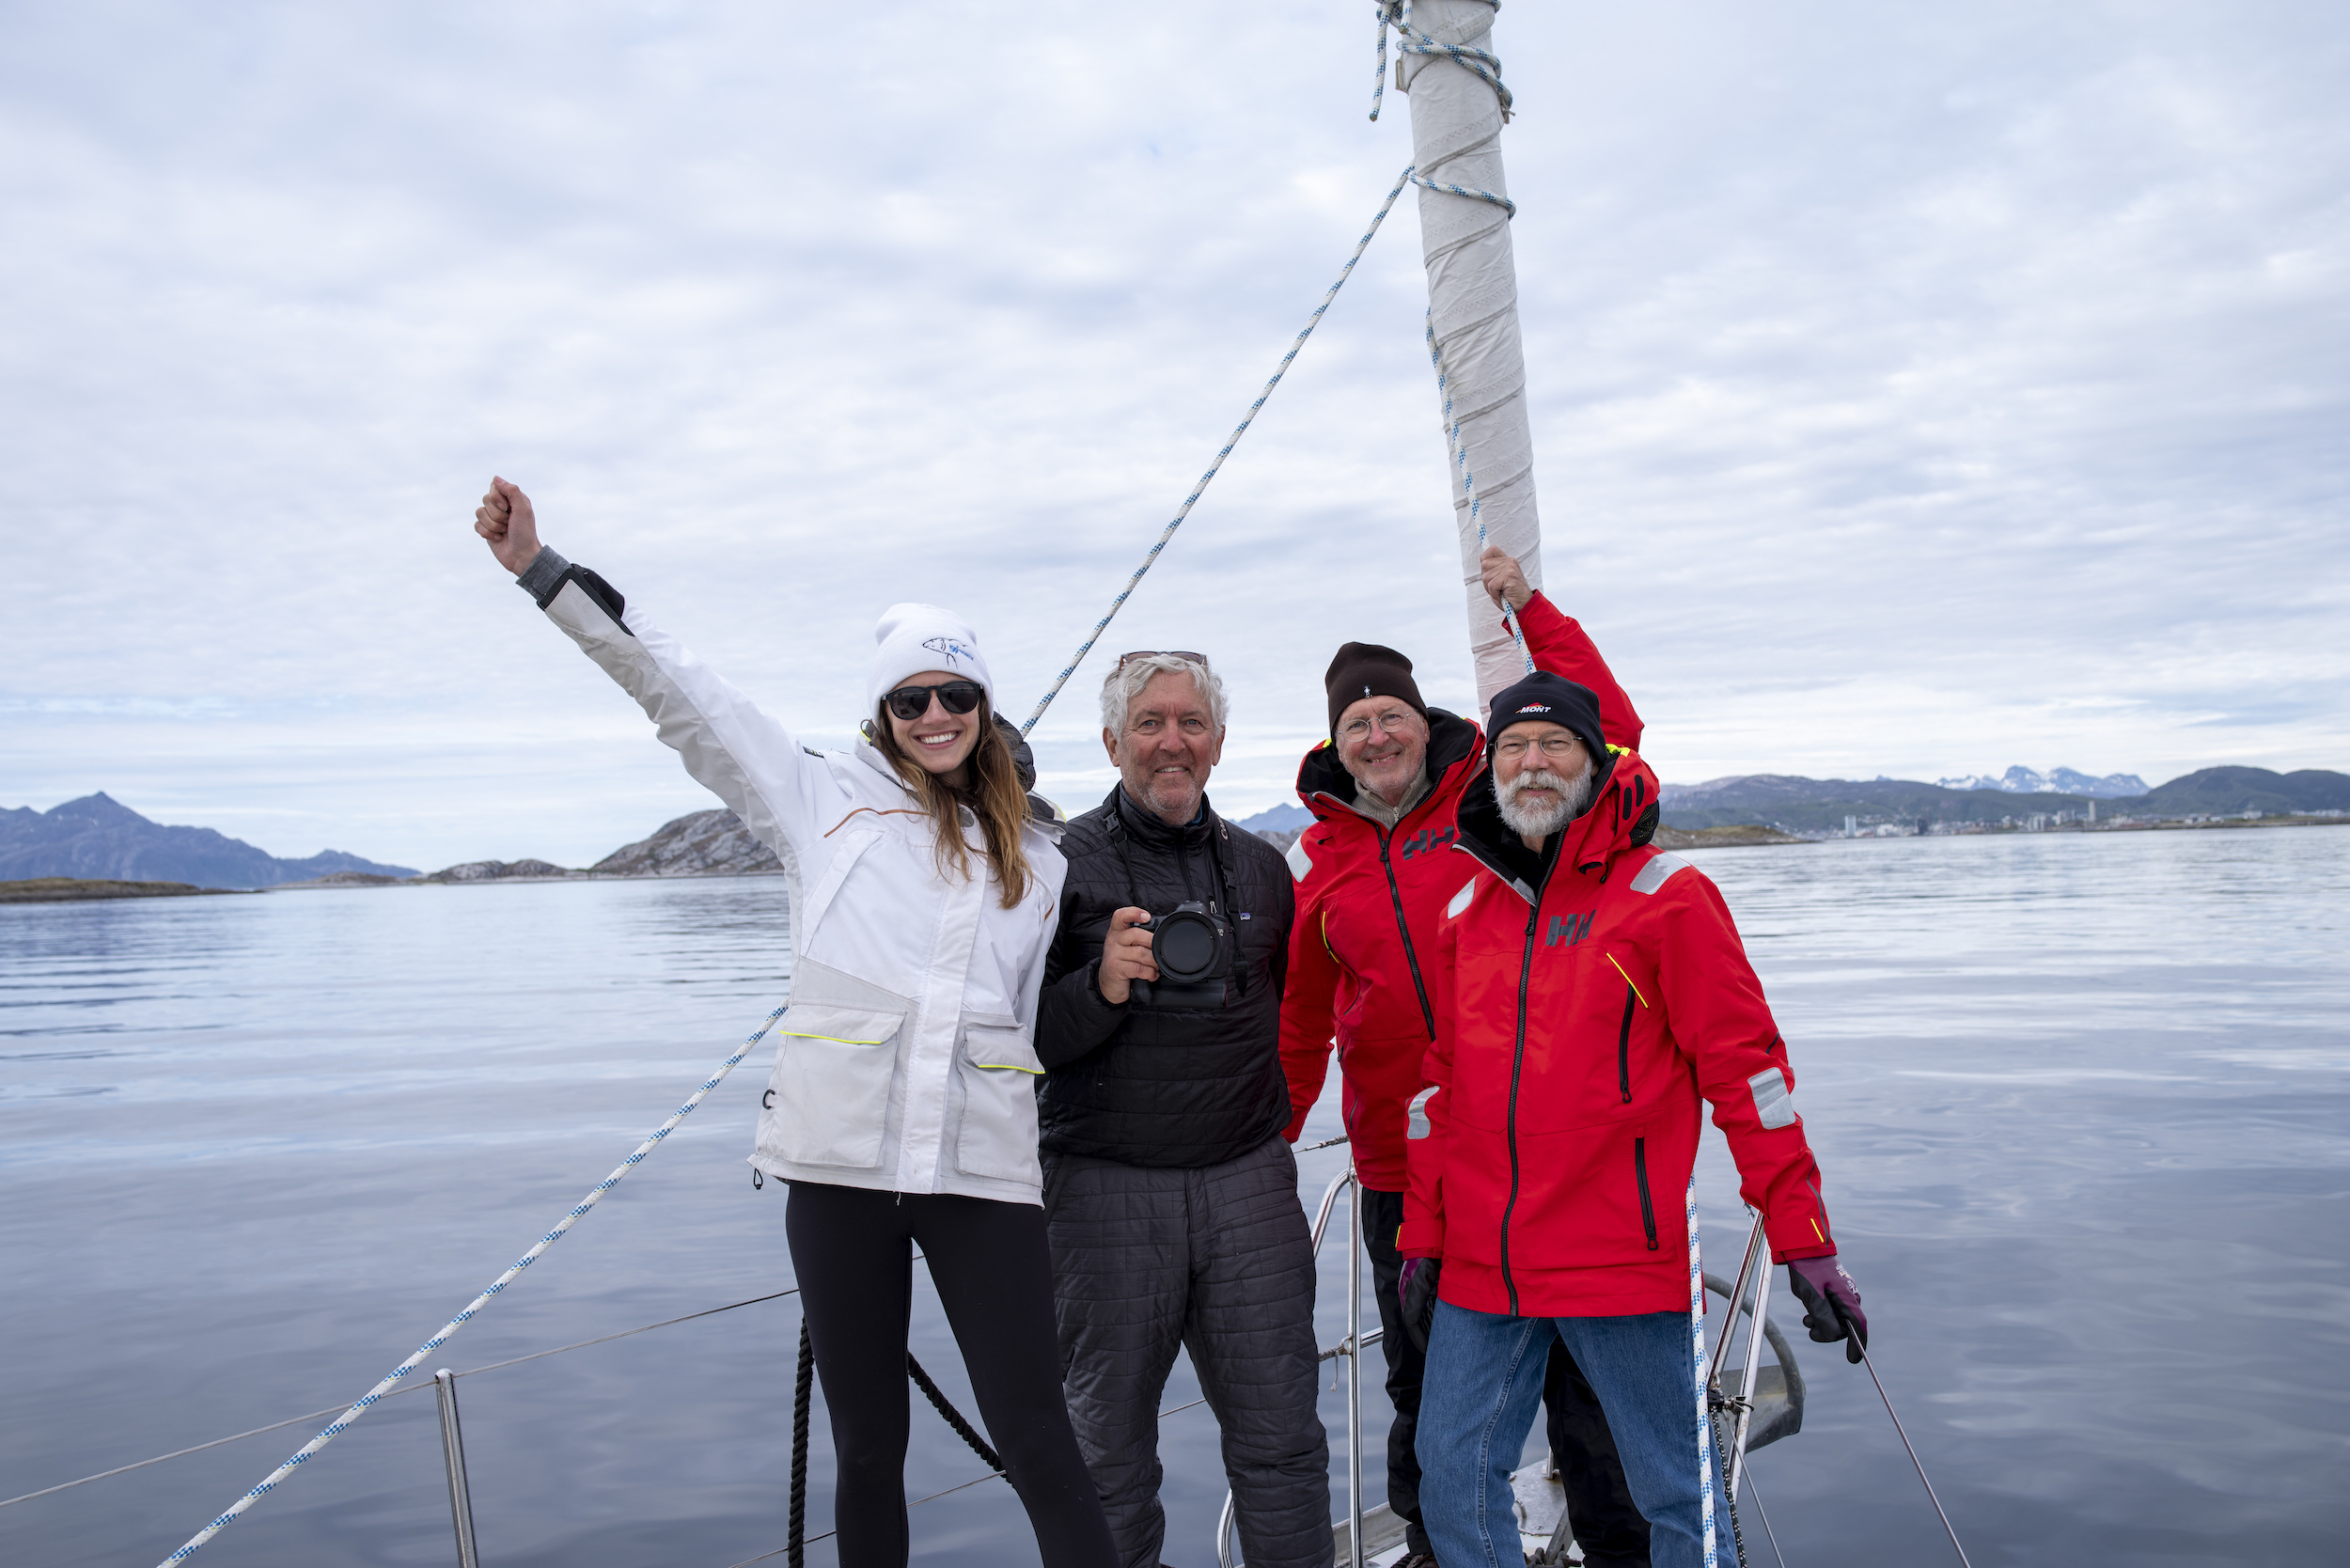 Isbjorn's happy crew on landfall in Norway!